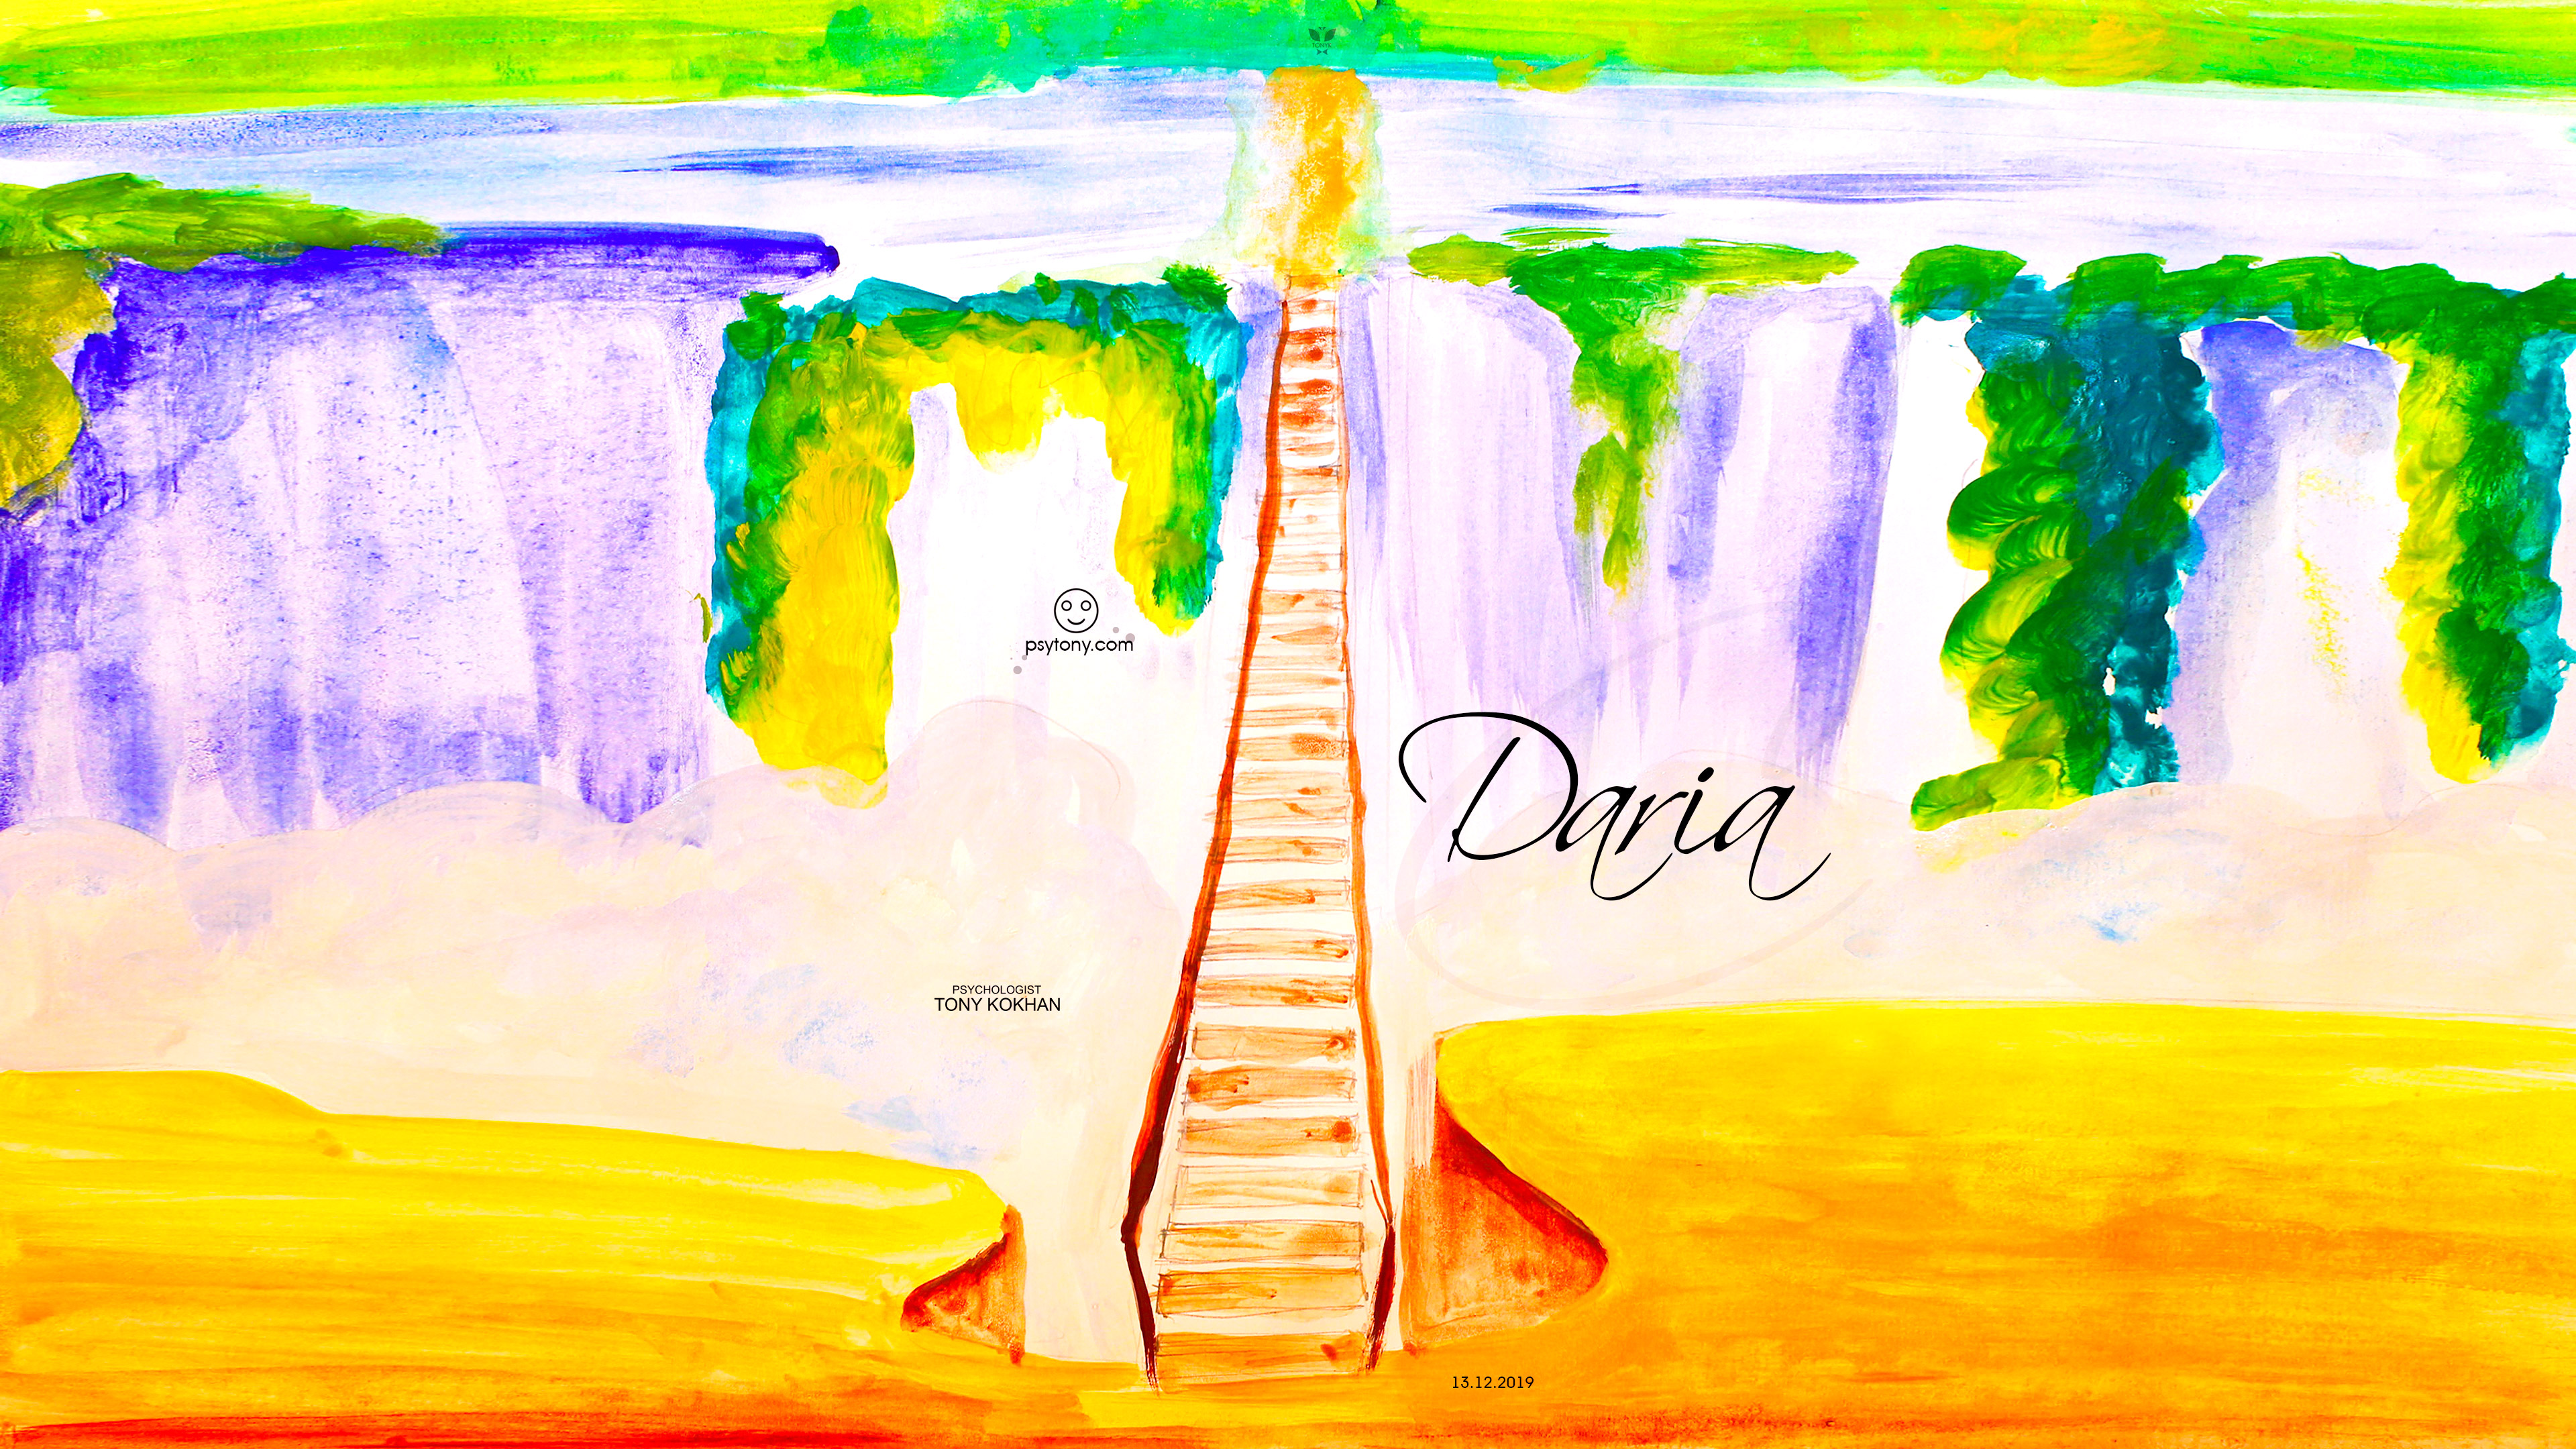 Daria-Soul-Girl-Bridge-Waterfall-Nature-Snake-Elephant-UpDown-Art-Picture-Drawing-with-Gouache-2019-Multicolors-4K-Wallpapers-by-Psychologist-Tony-Kokhan-www.psytony.com-image